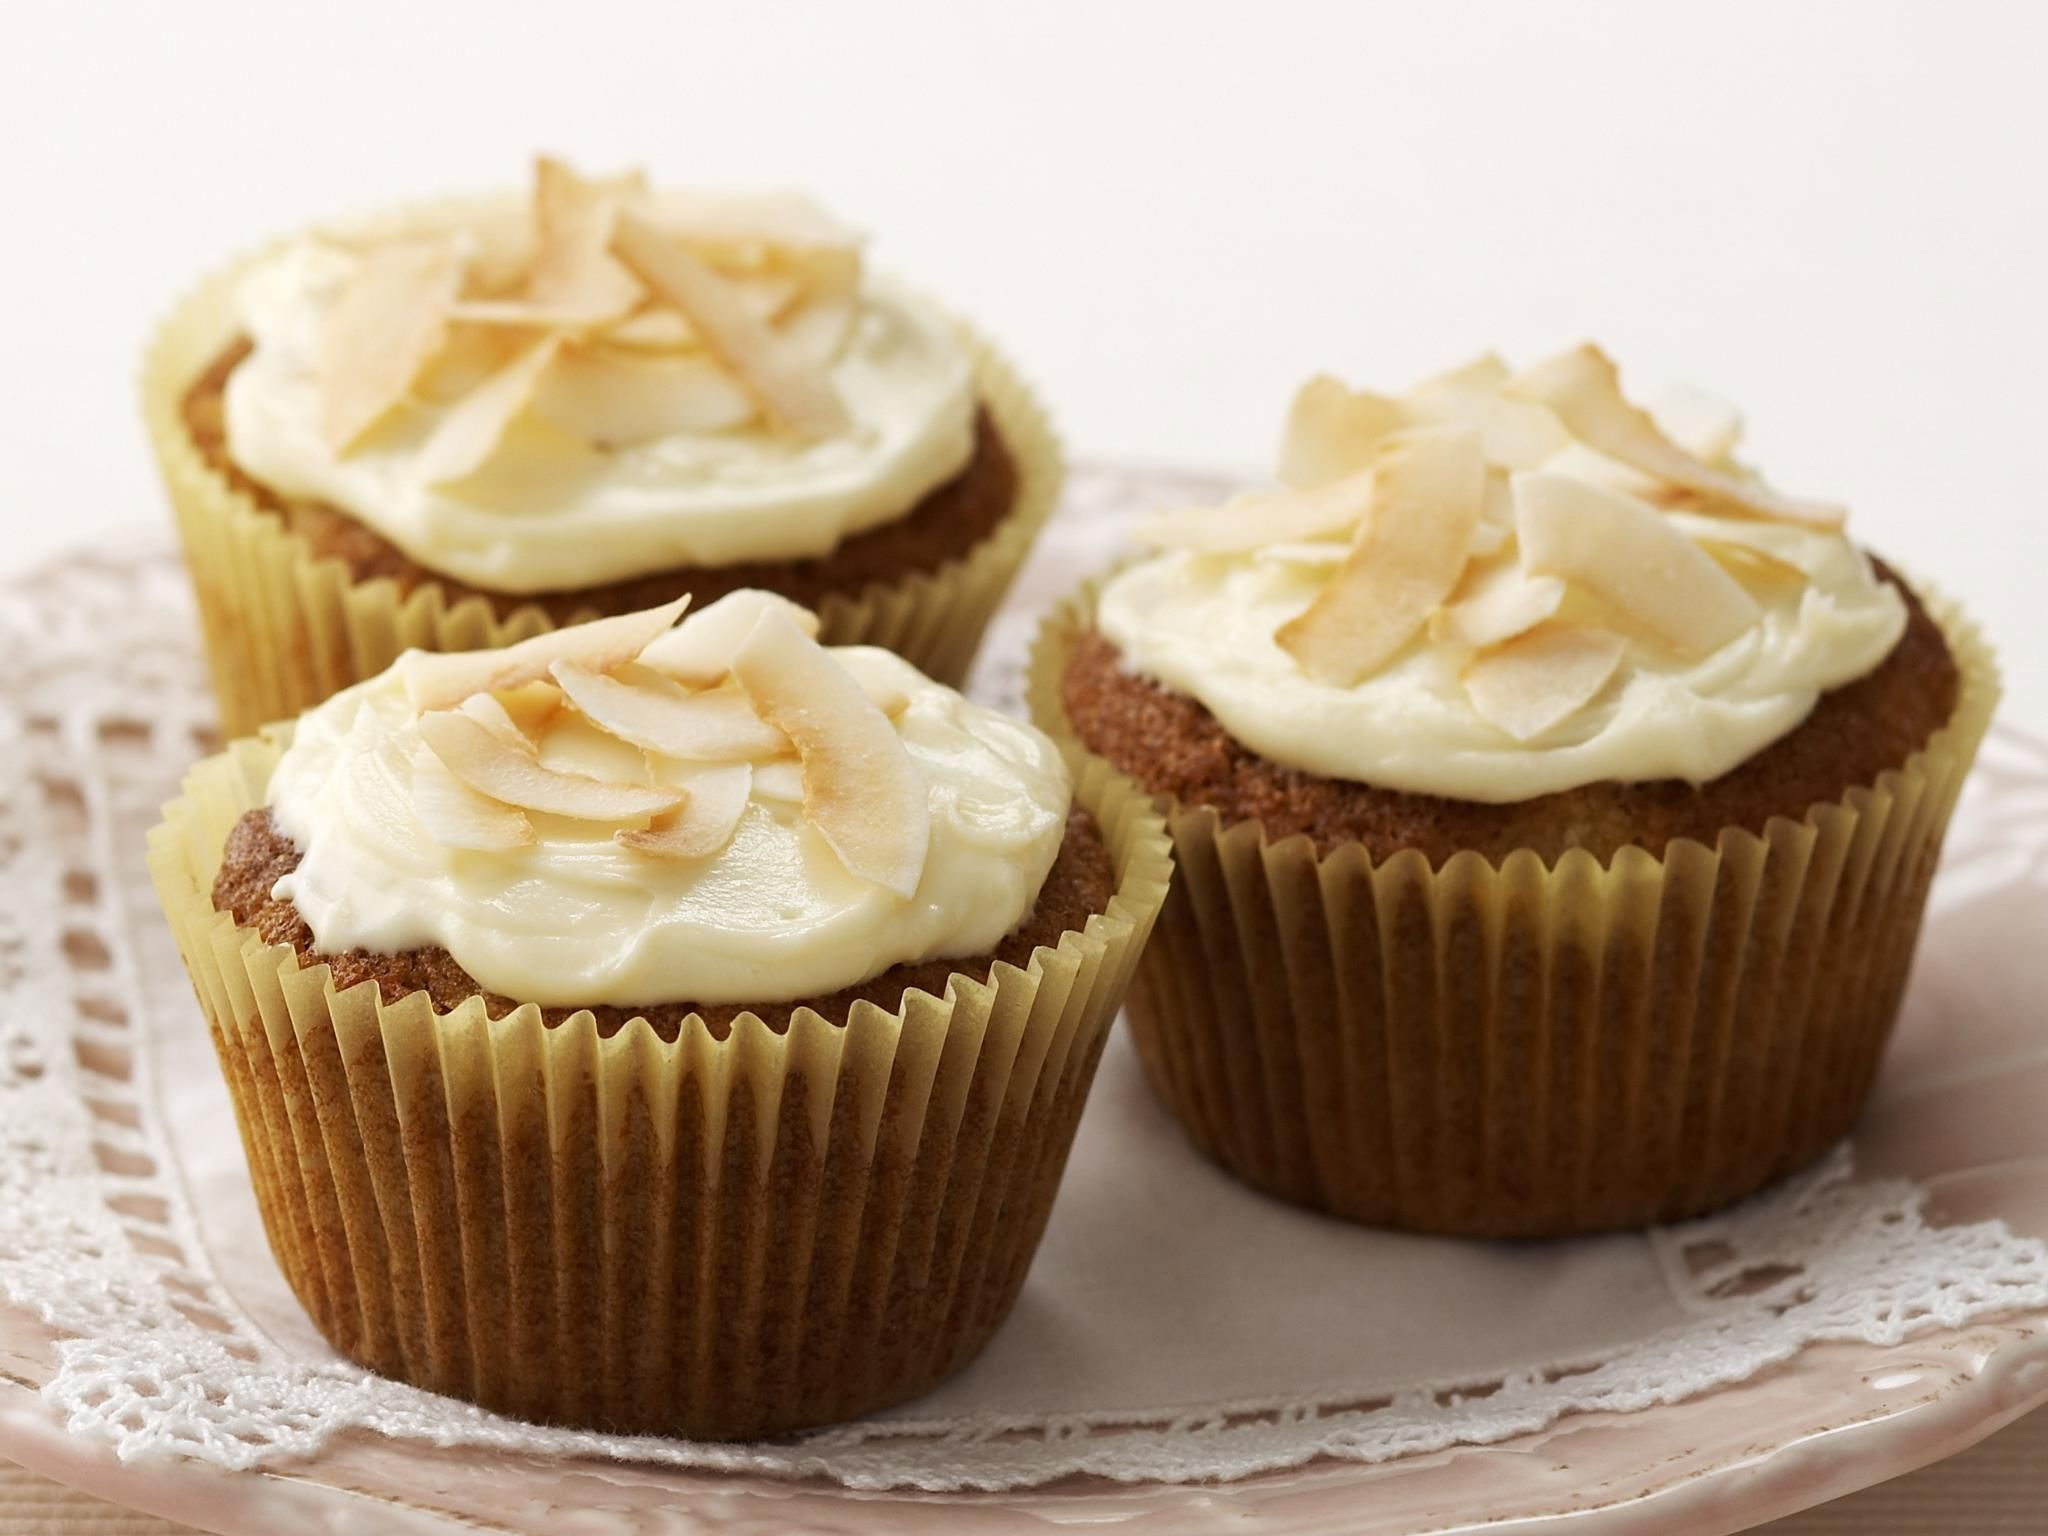 Hummingbird cupcakes, pineapple recipe, brought to you by